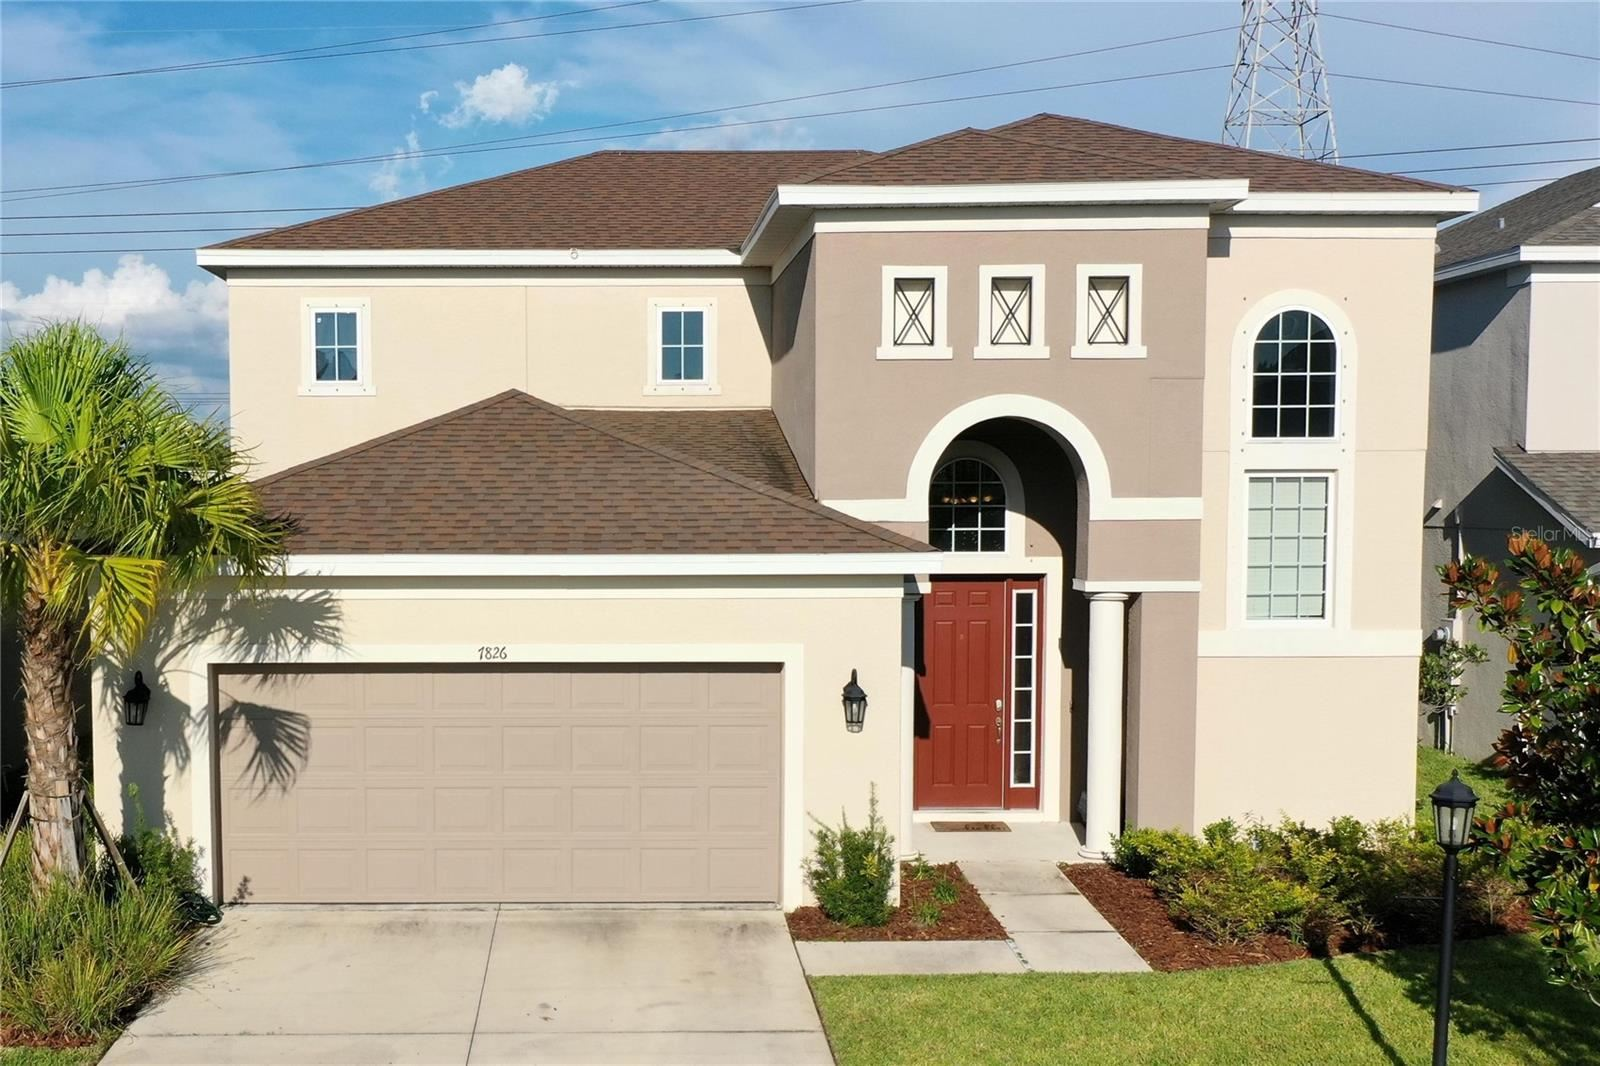 7826 RED HICKORY PLACE, Riverview, FL 33578 - #: T3319968